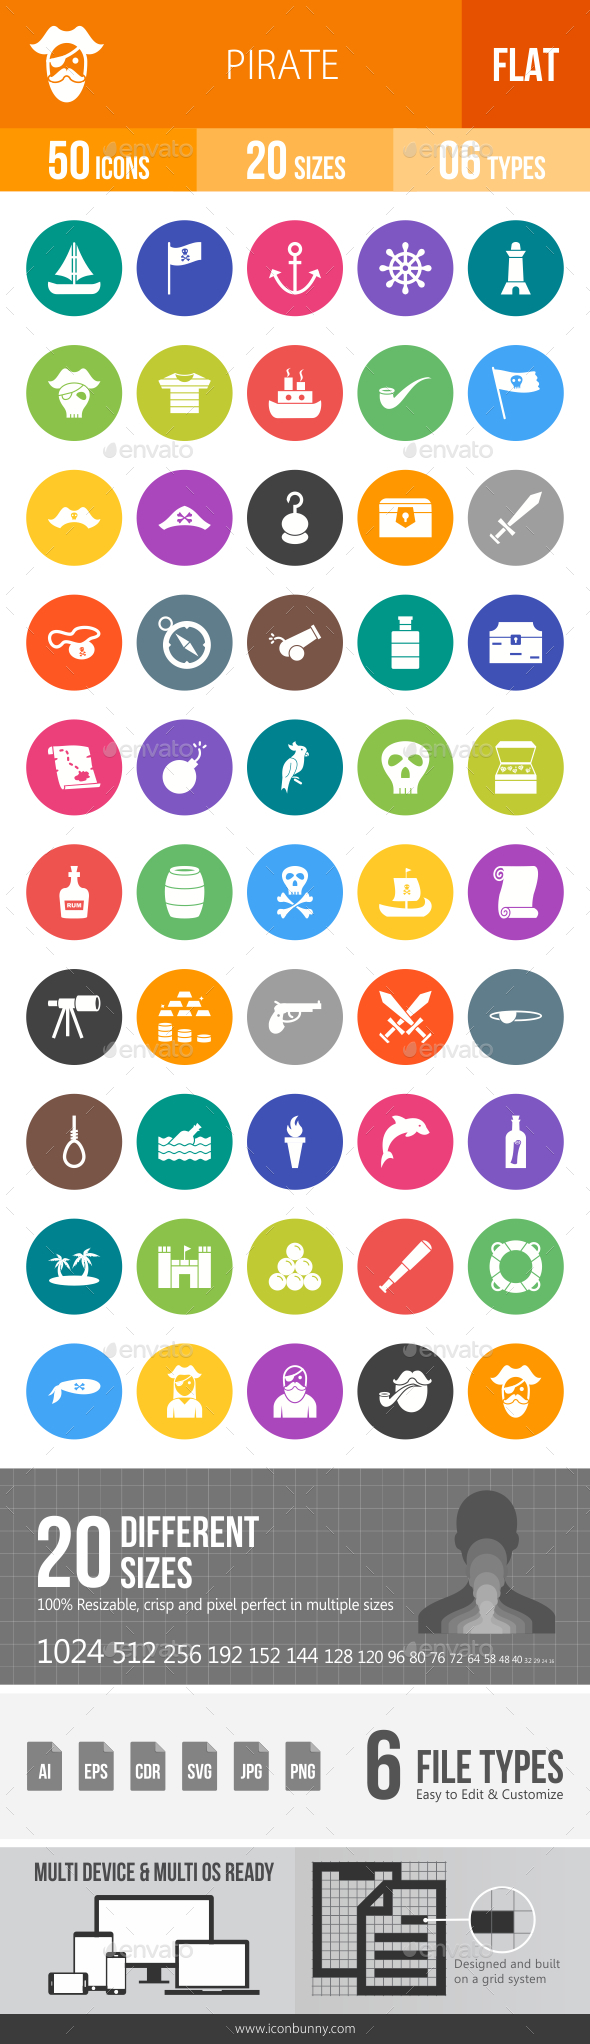 Pirate Flat Round Icons - Icons